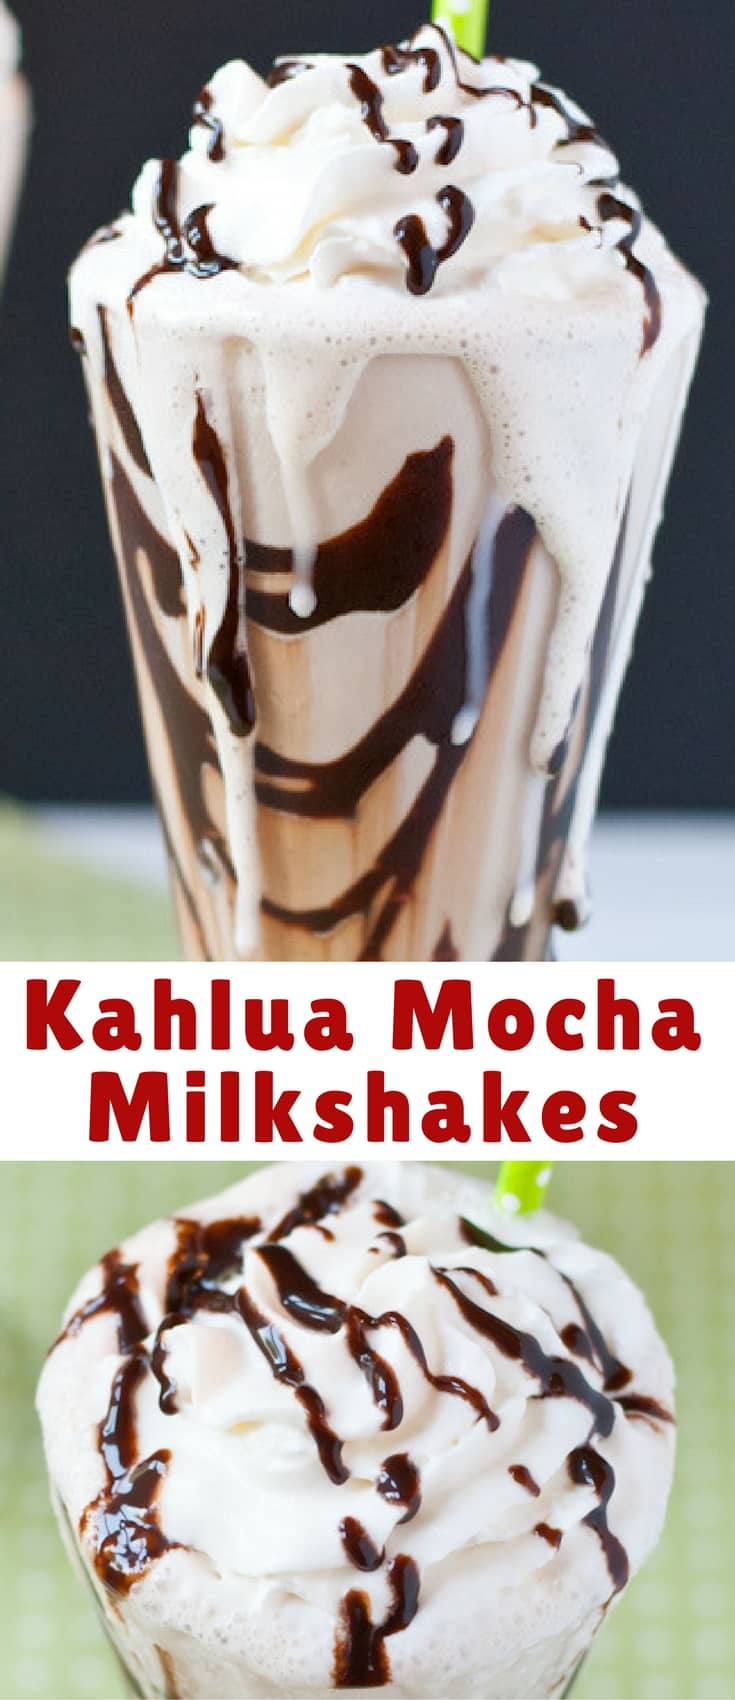 Calling all chocolate and coffee lovers! These boozy Kahlua Mocha Milkshakes are perfect for special occasions or, ya know, a random Thursday.